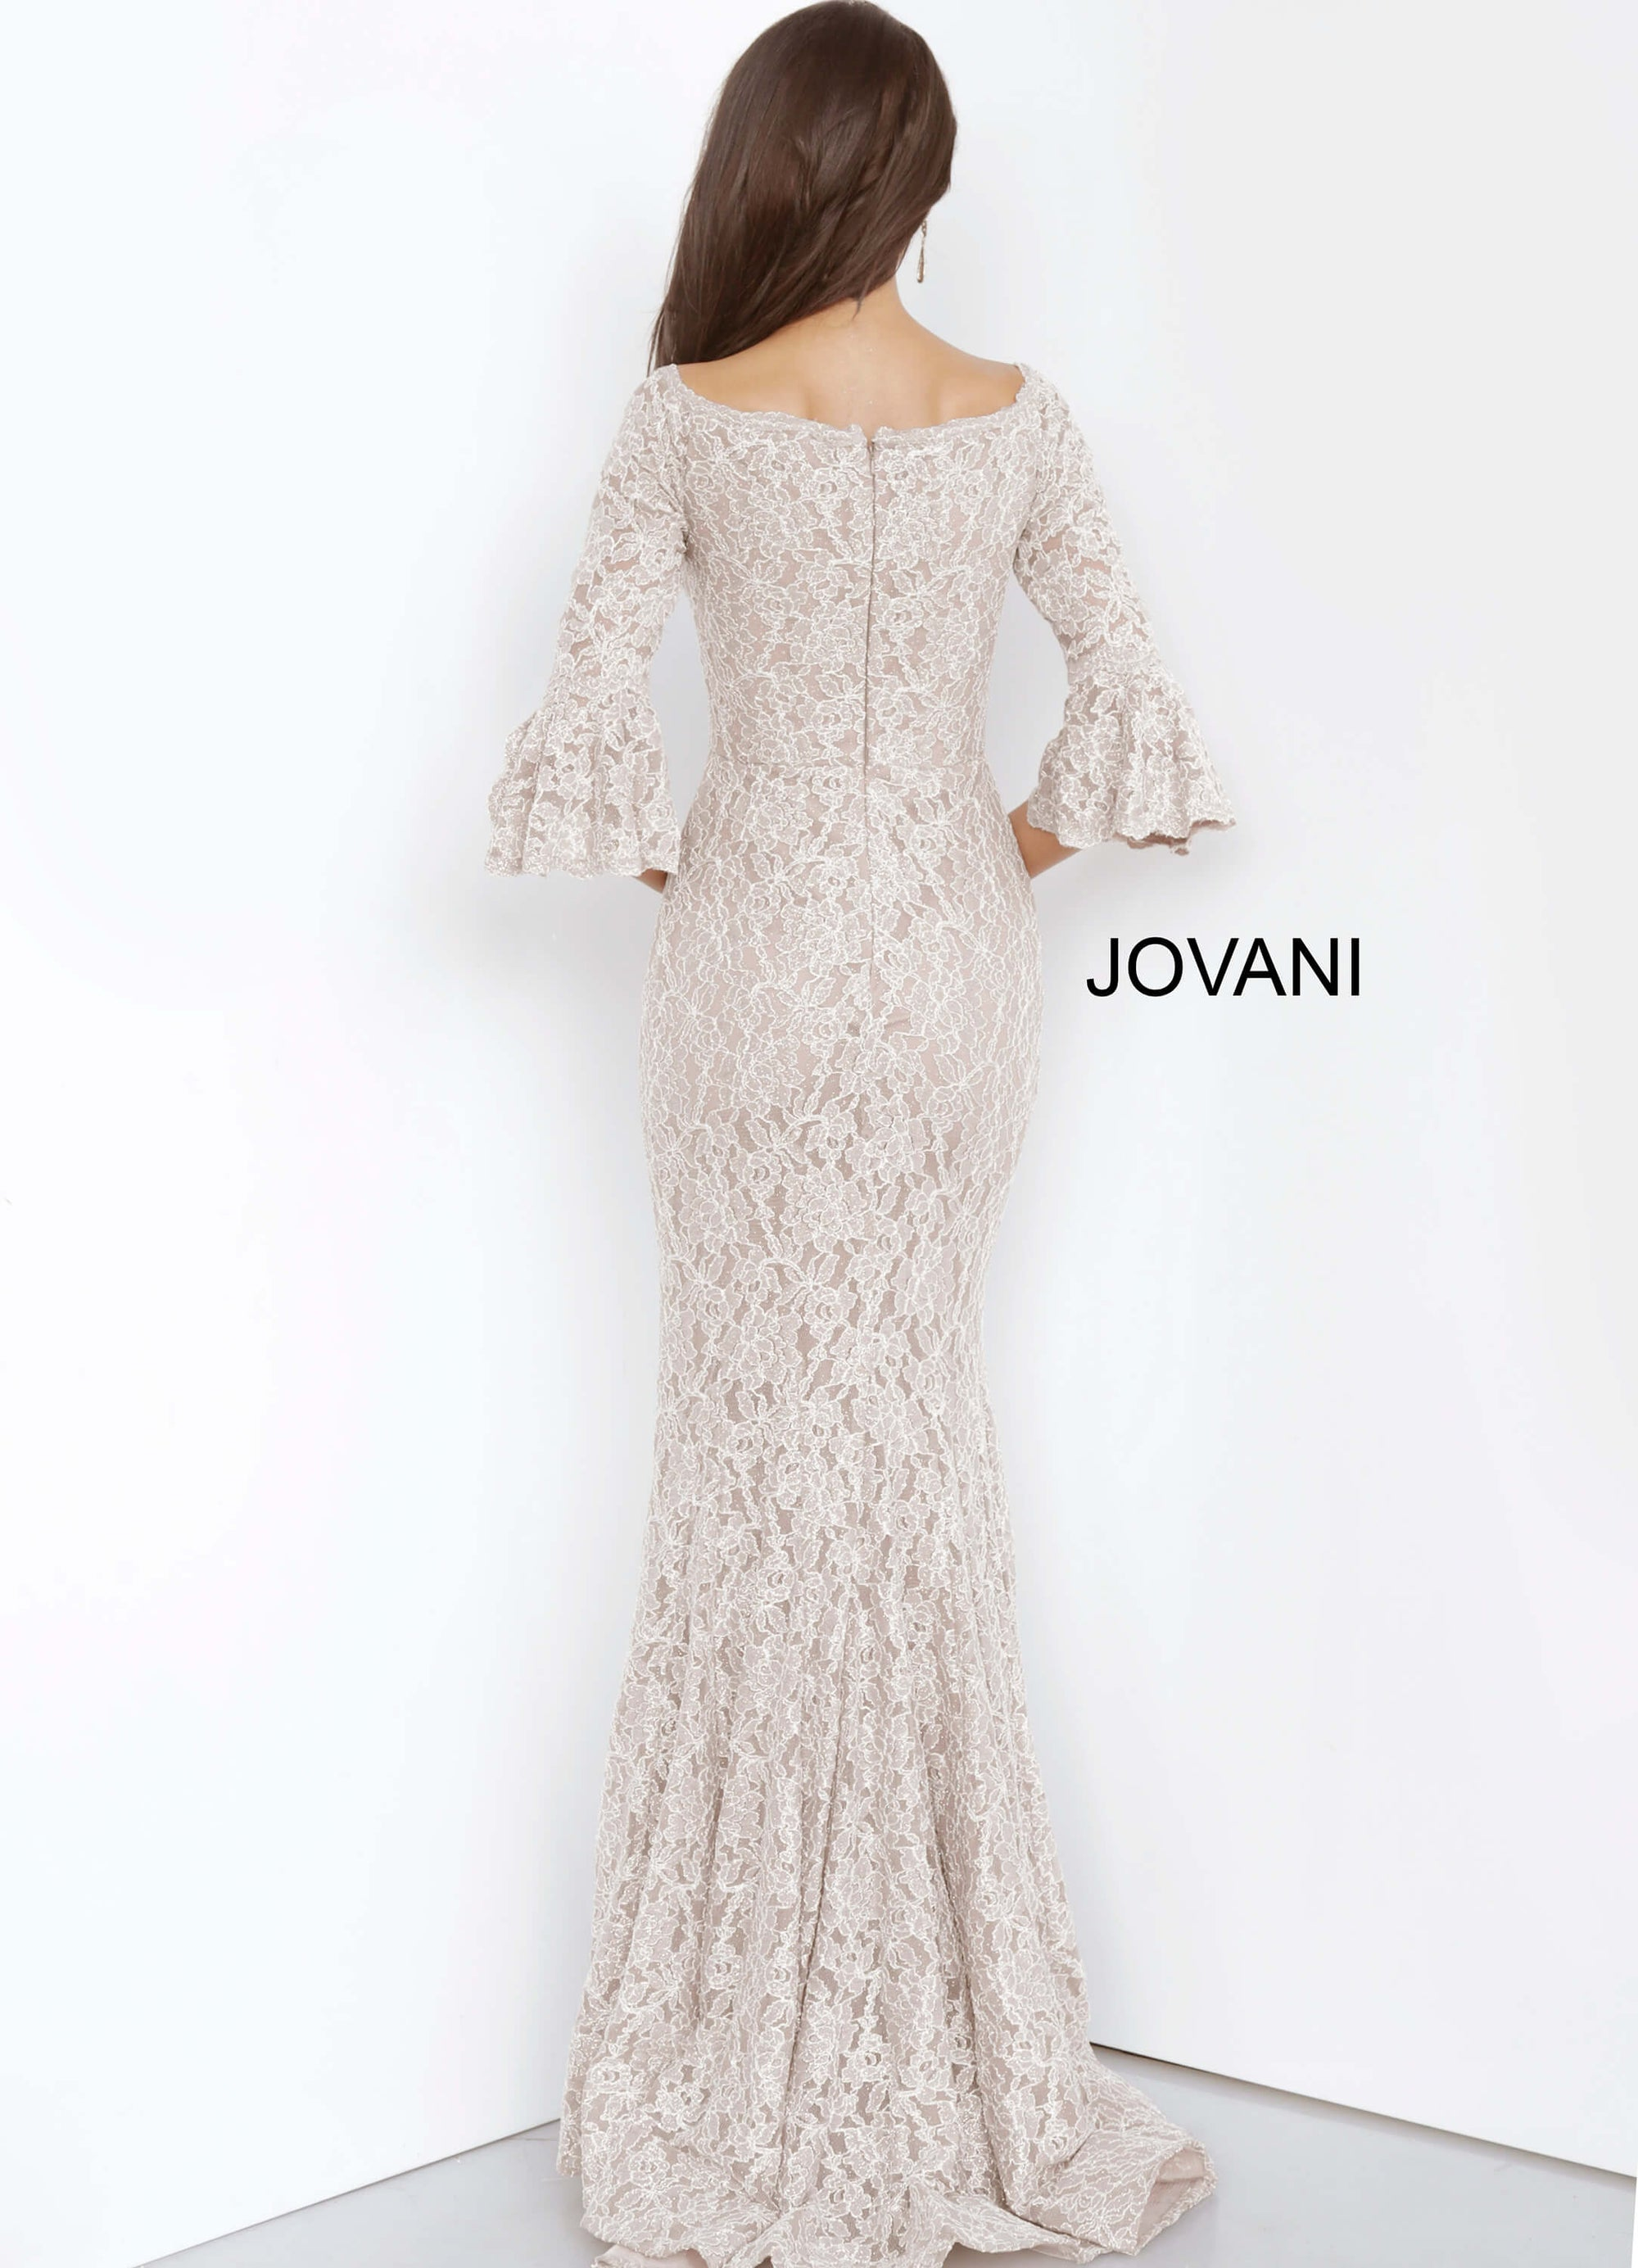 Jovani 68810 champagne mother of the bride